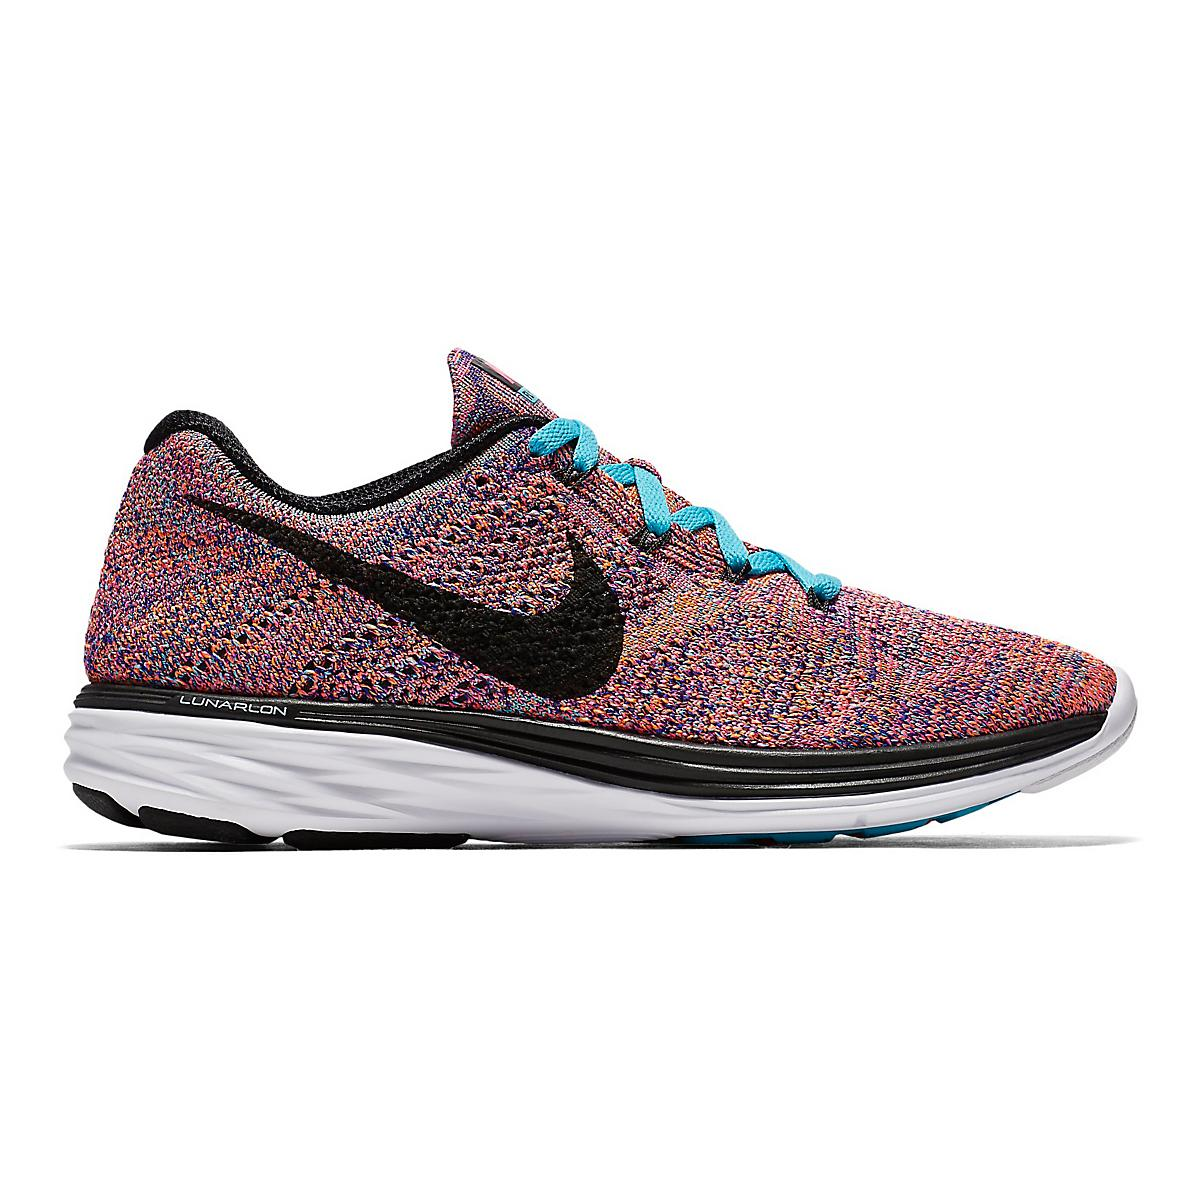 Womens Nike Flyknit Lunar 3 Running Shoe at Road Runner Sports